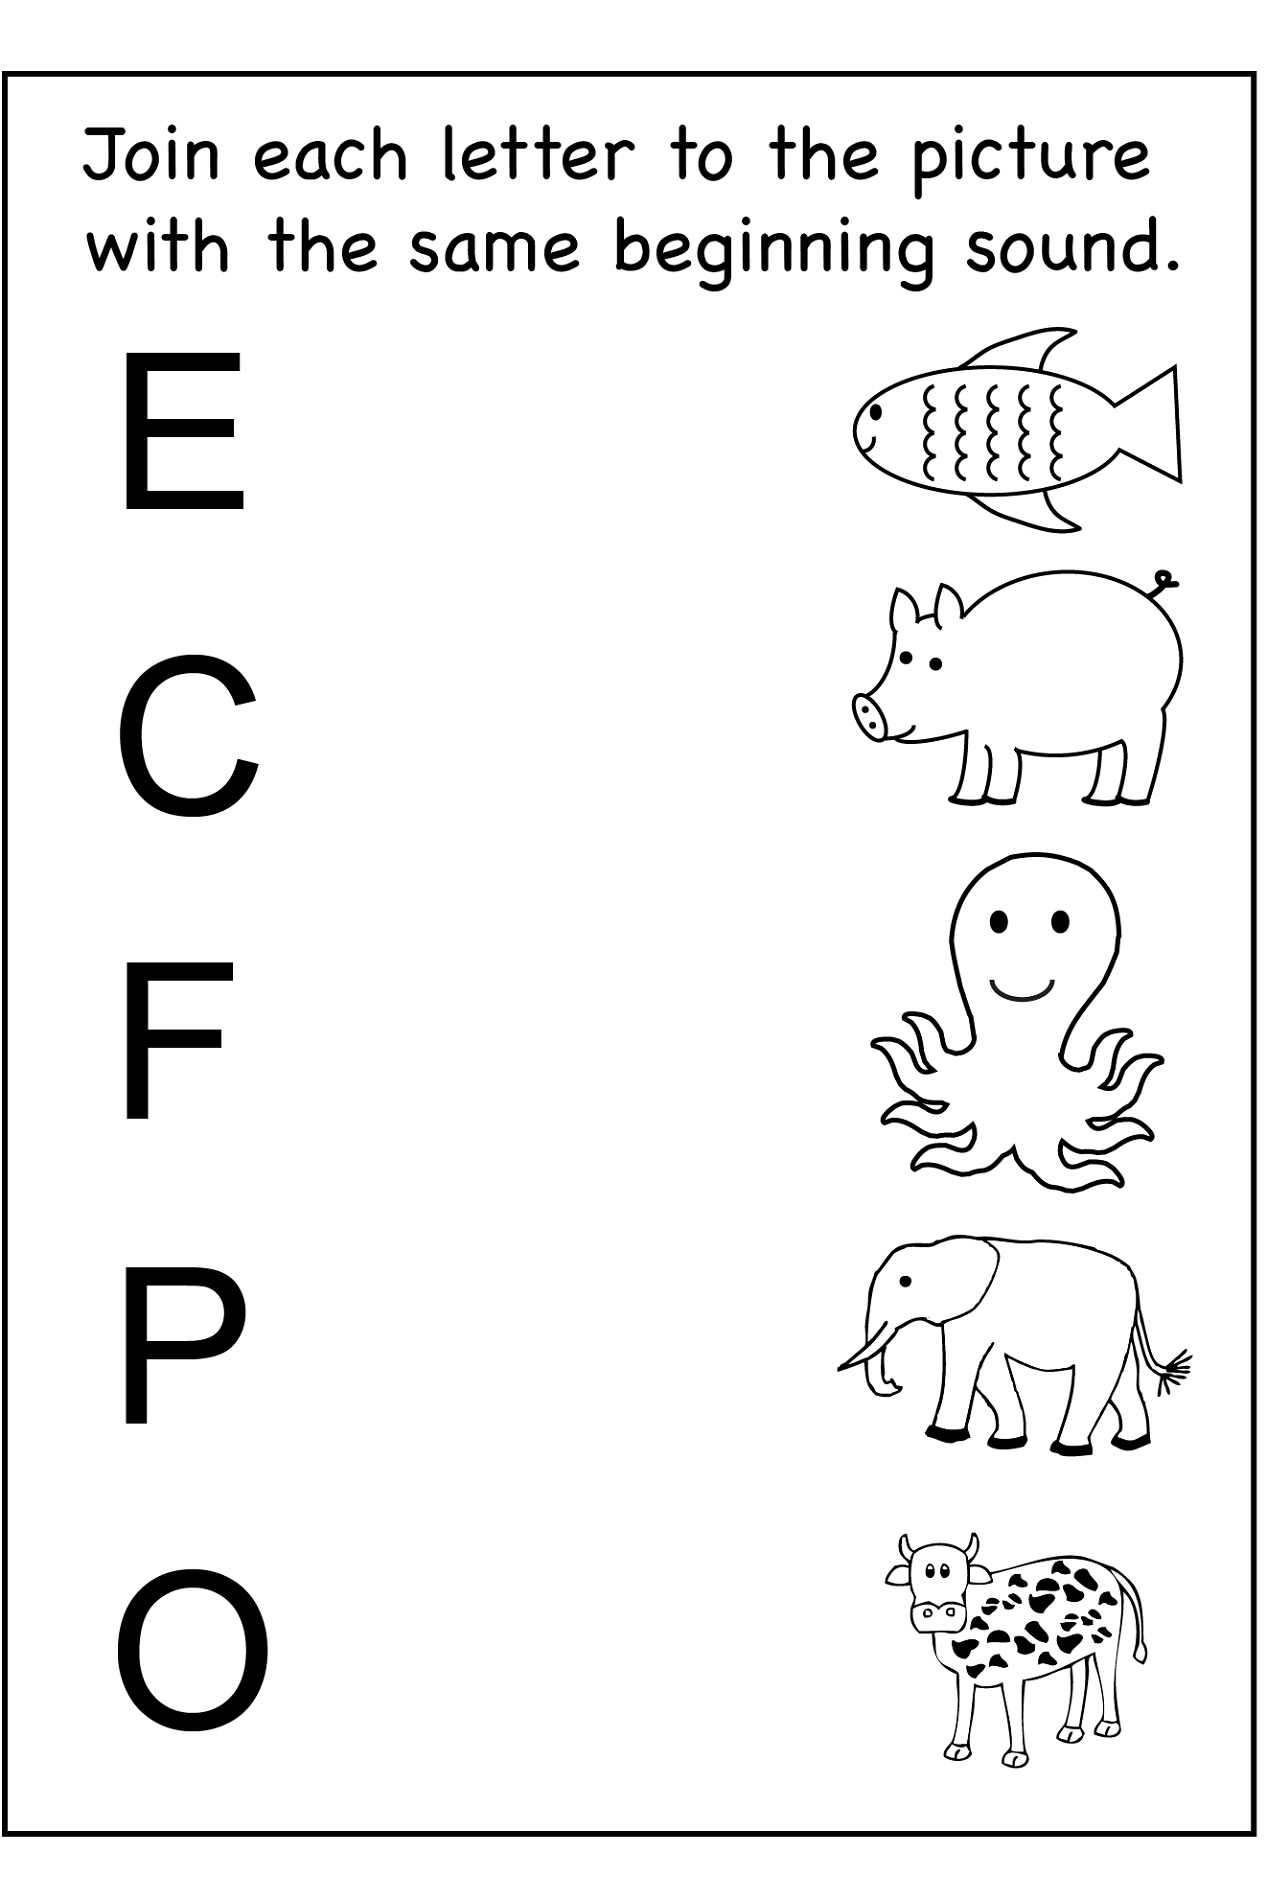 printable activity sheets new - Activity Sheets For Preschool